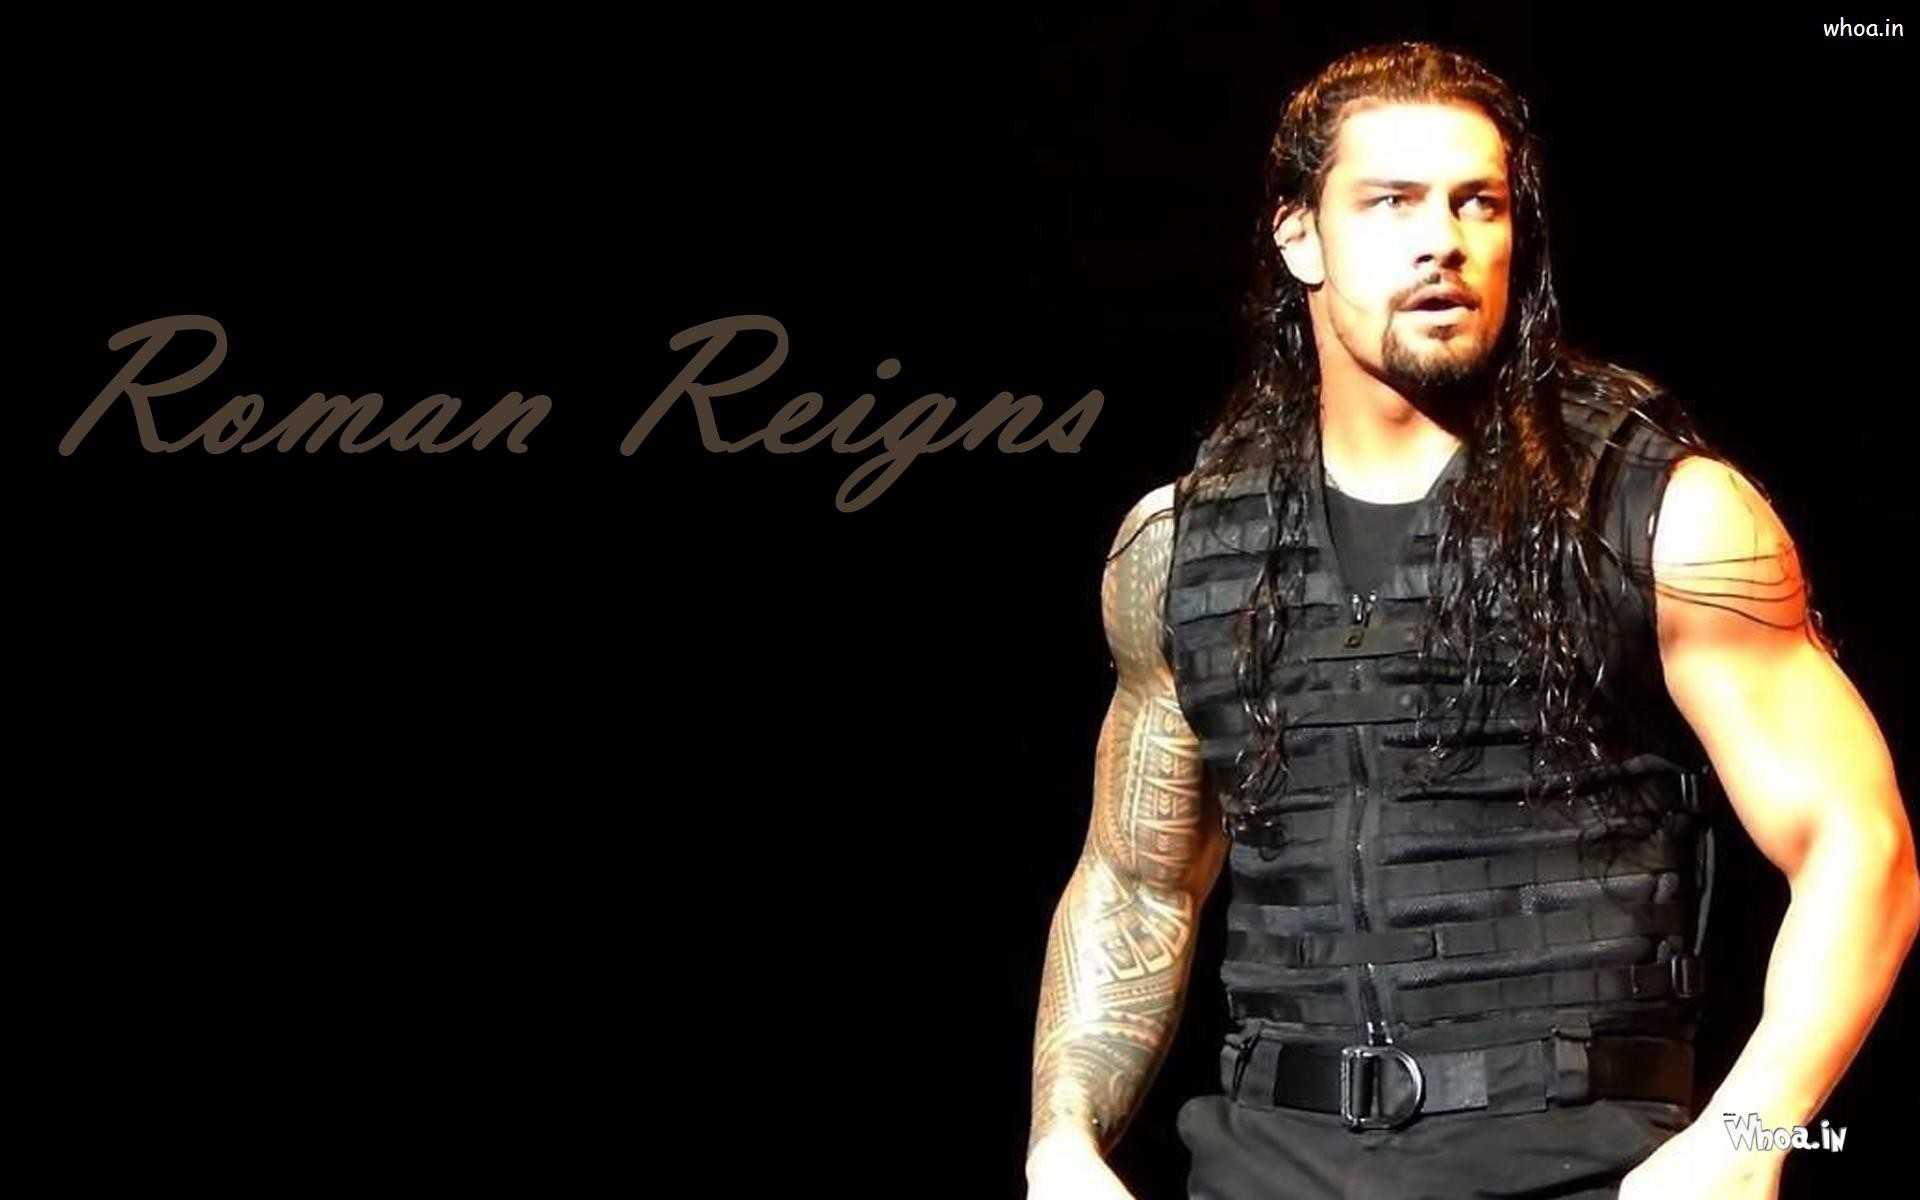 1920x1200 Roman Reigns Desktop Wallpaper. Share this page. Wow! (701). Download